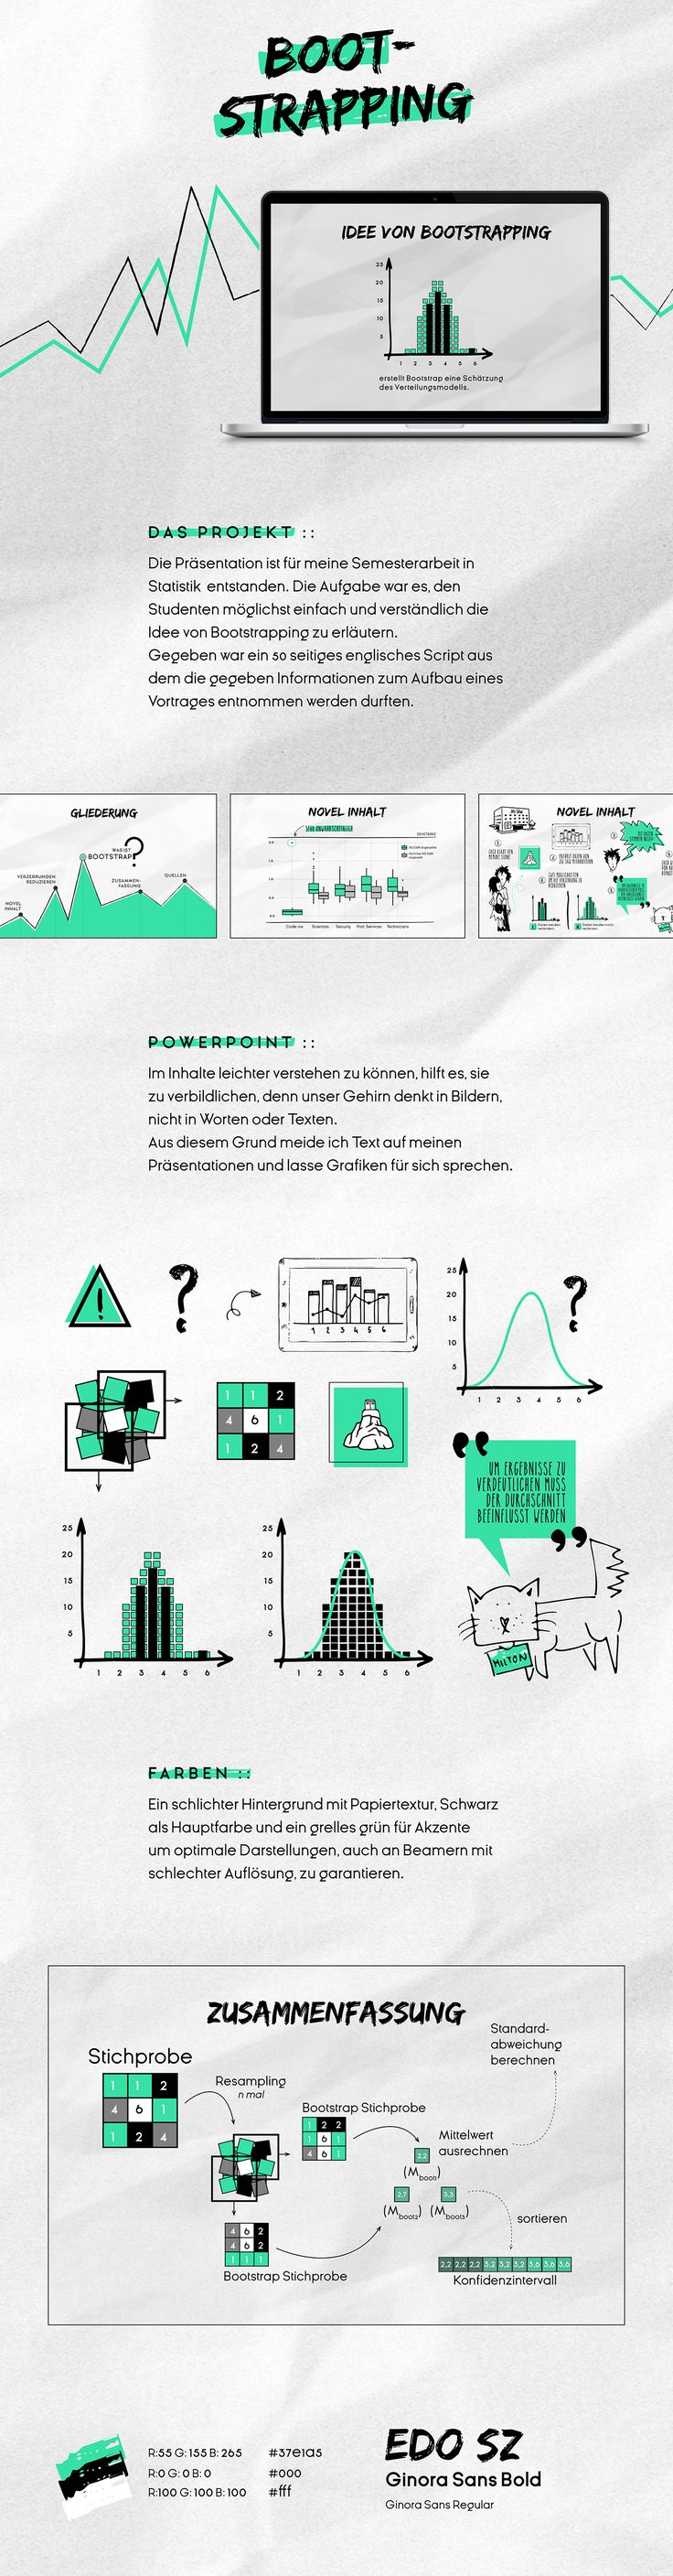 "Check out my @Behance project: ""Statistics Presentation Slides"" https://www.behance.net/gallery/59646143/Statistics-Presentation-Slides"